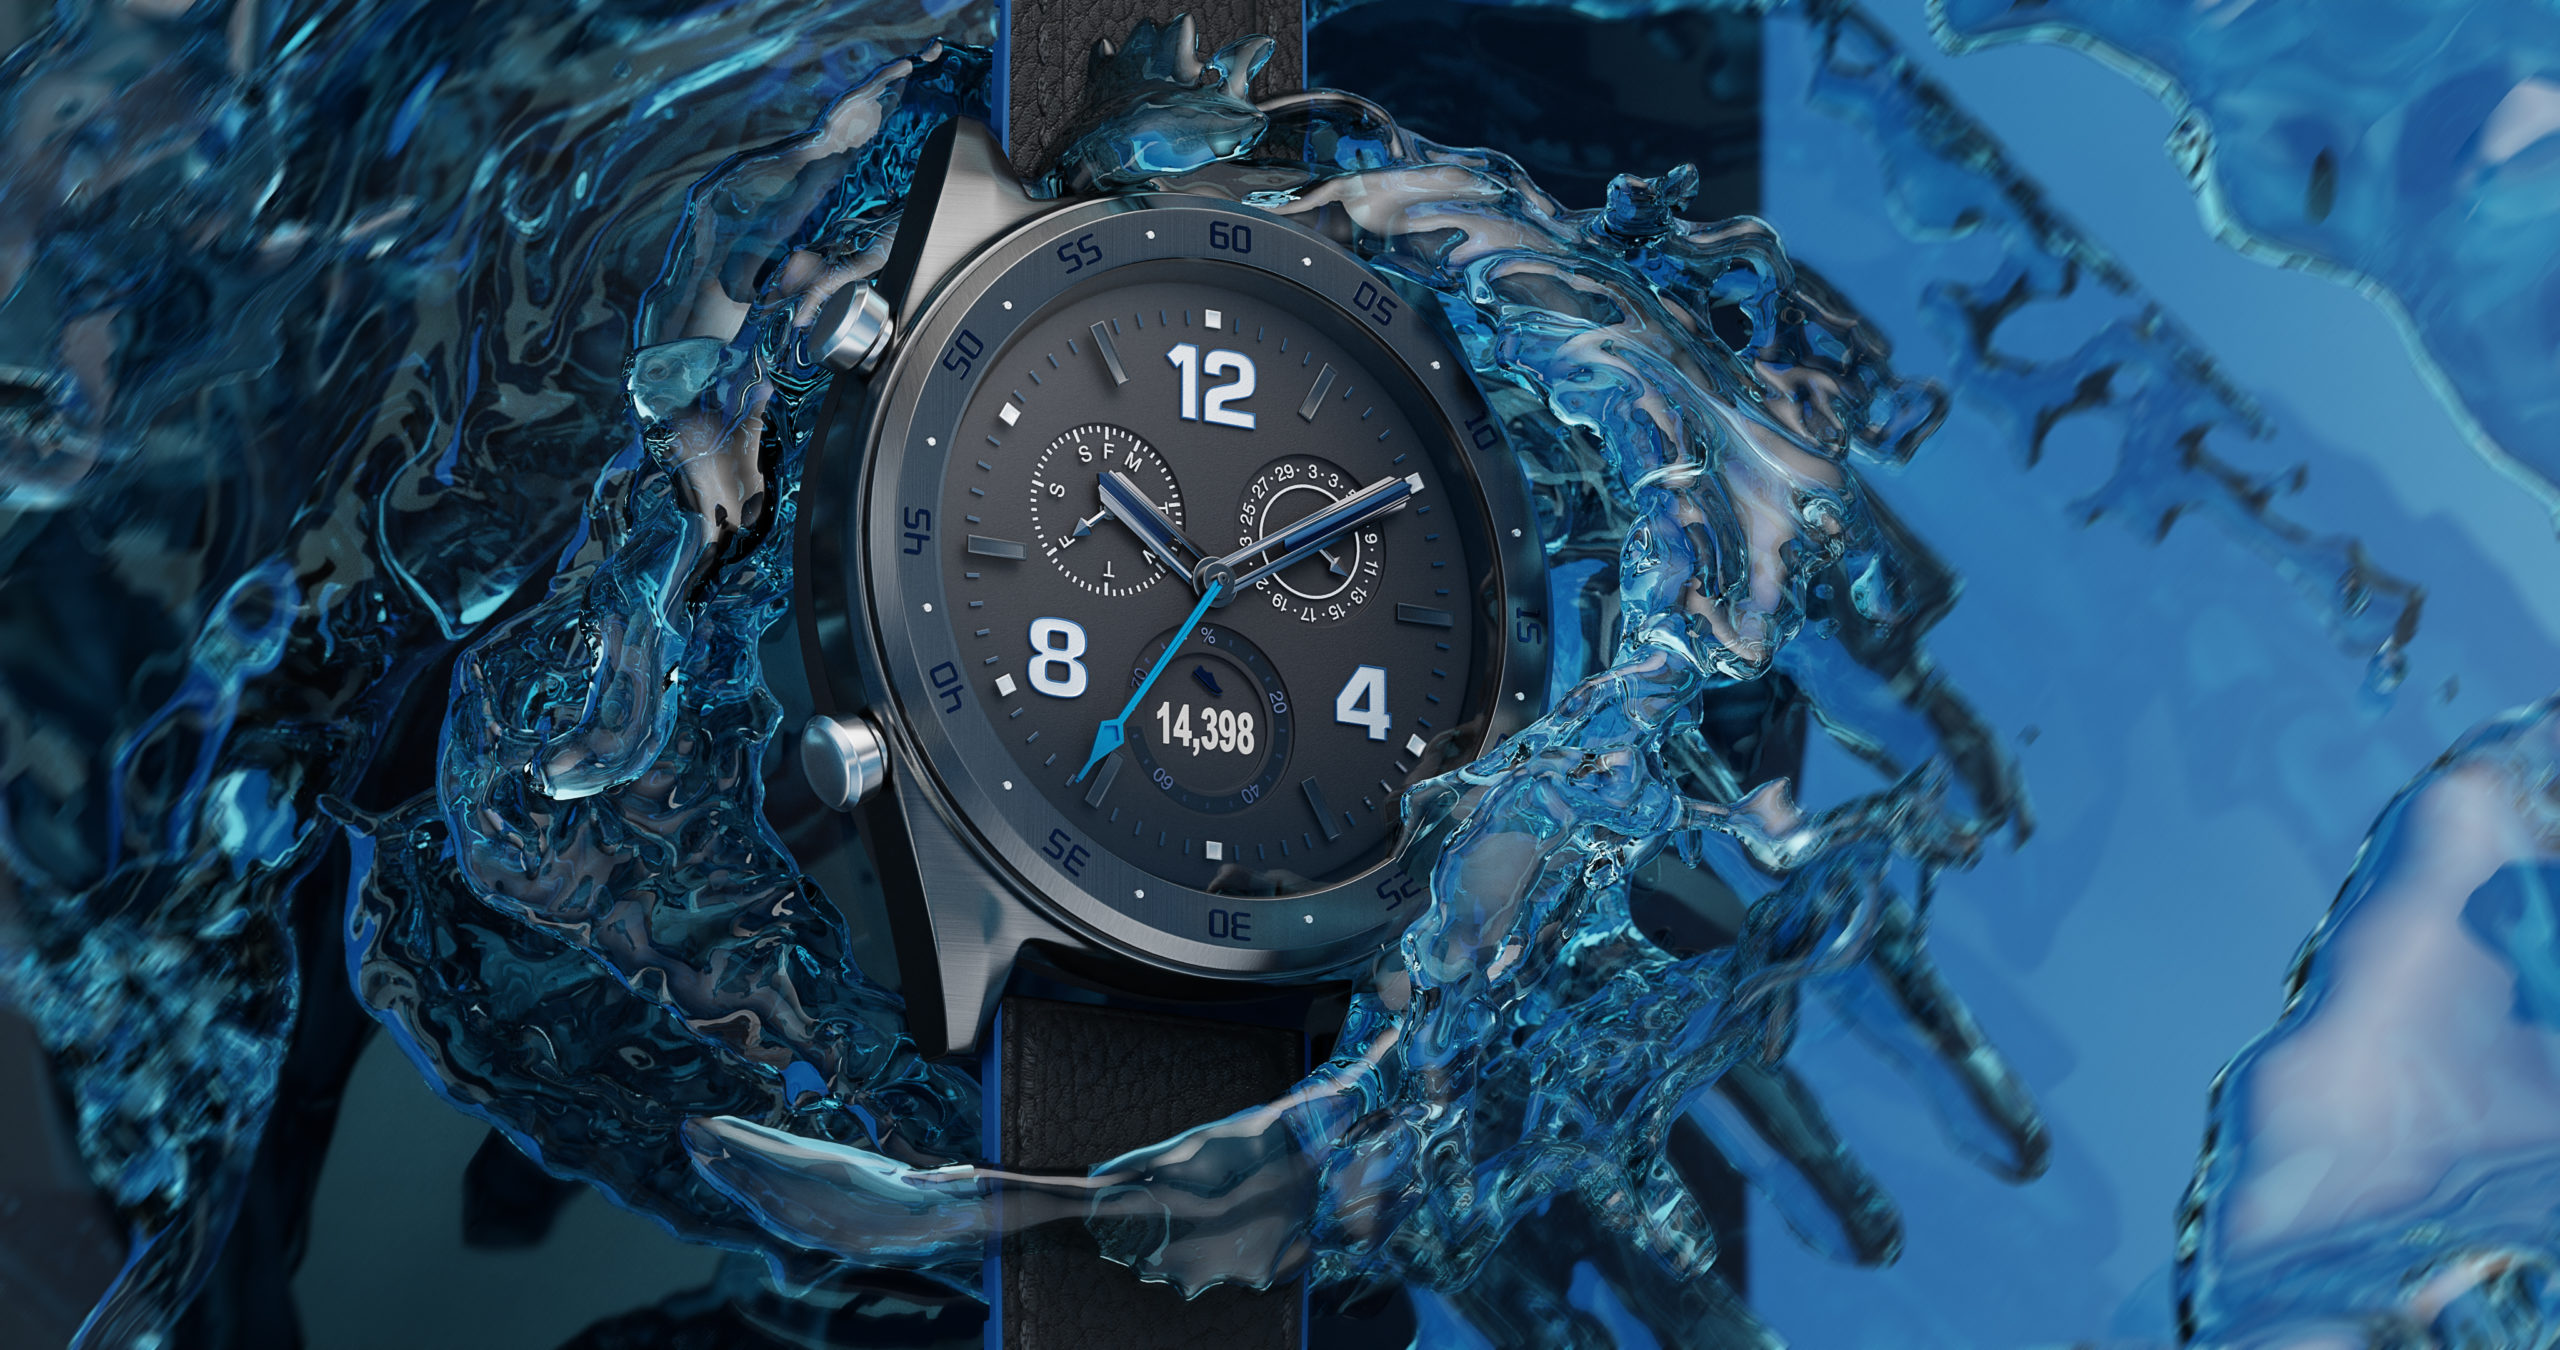 Wenbo Zhao CGI Watch Photography red background with a sport watch under the ocean with splash